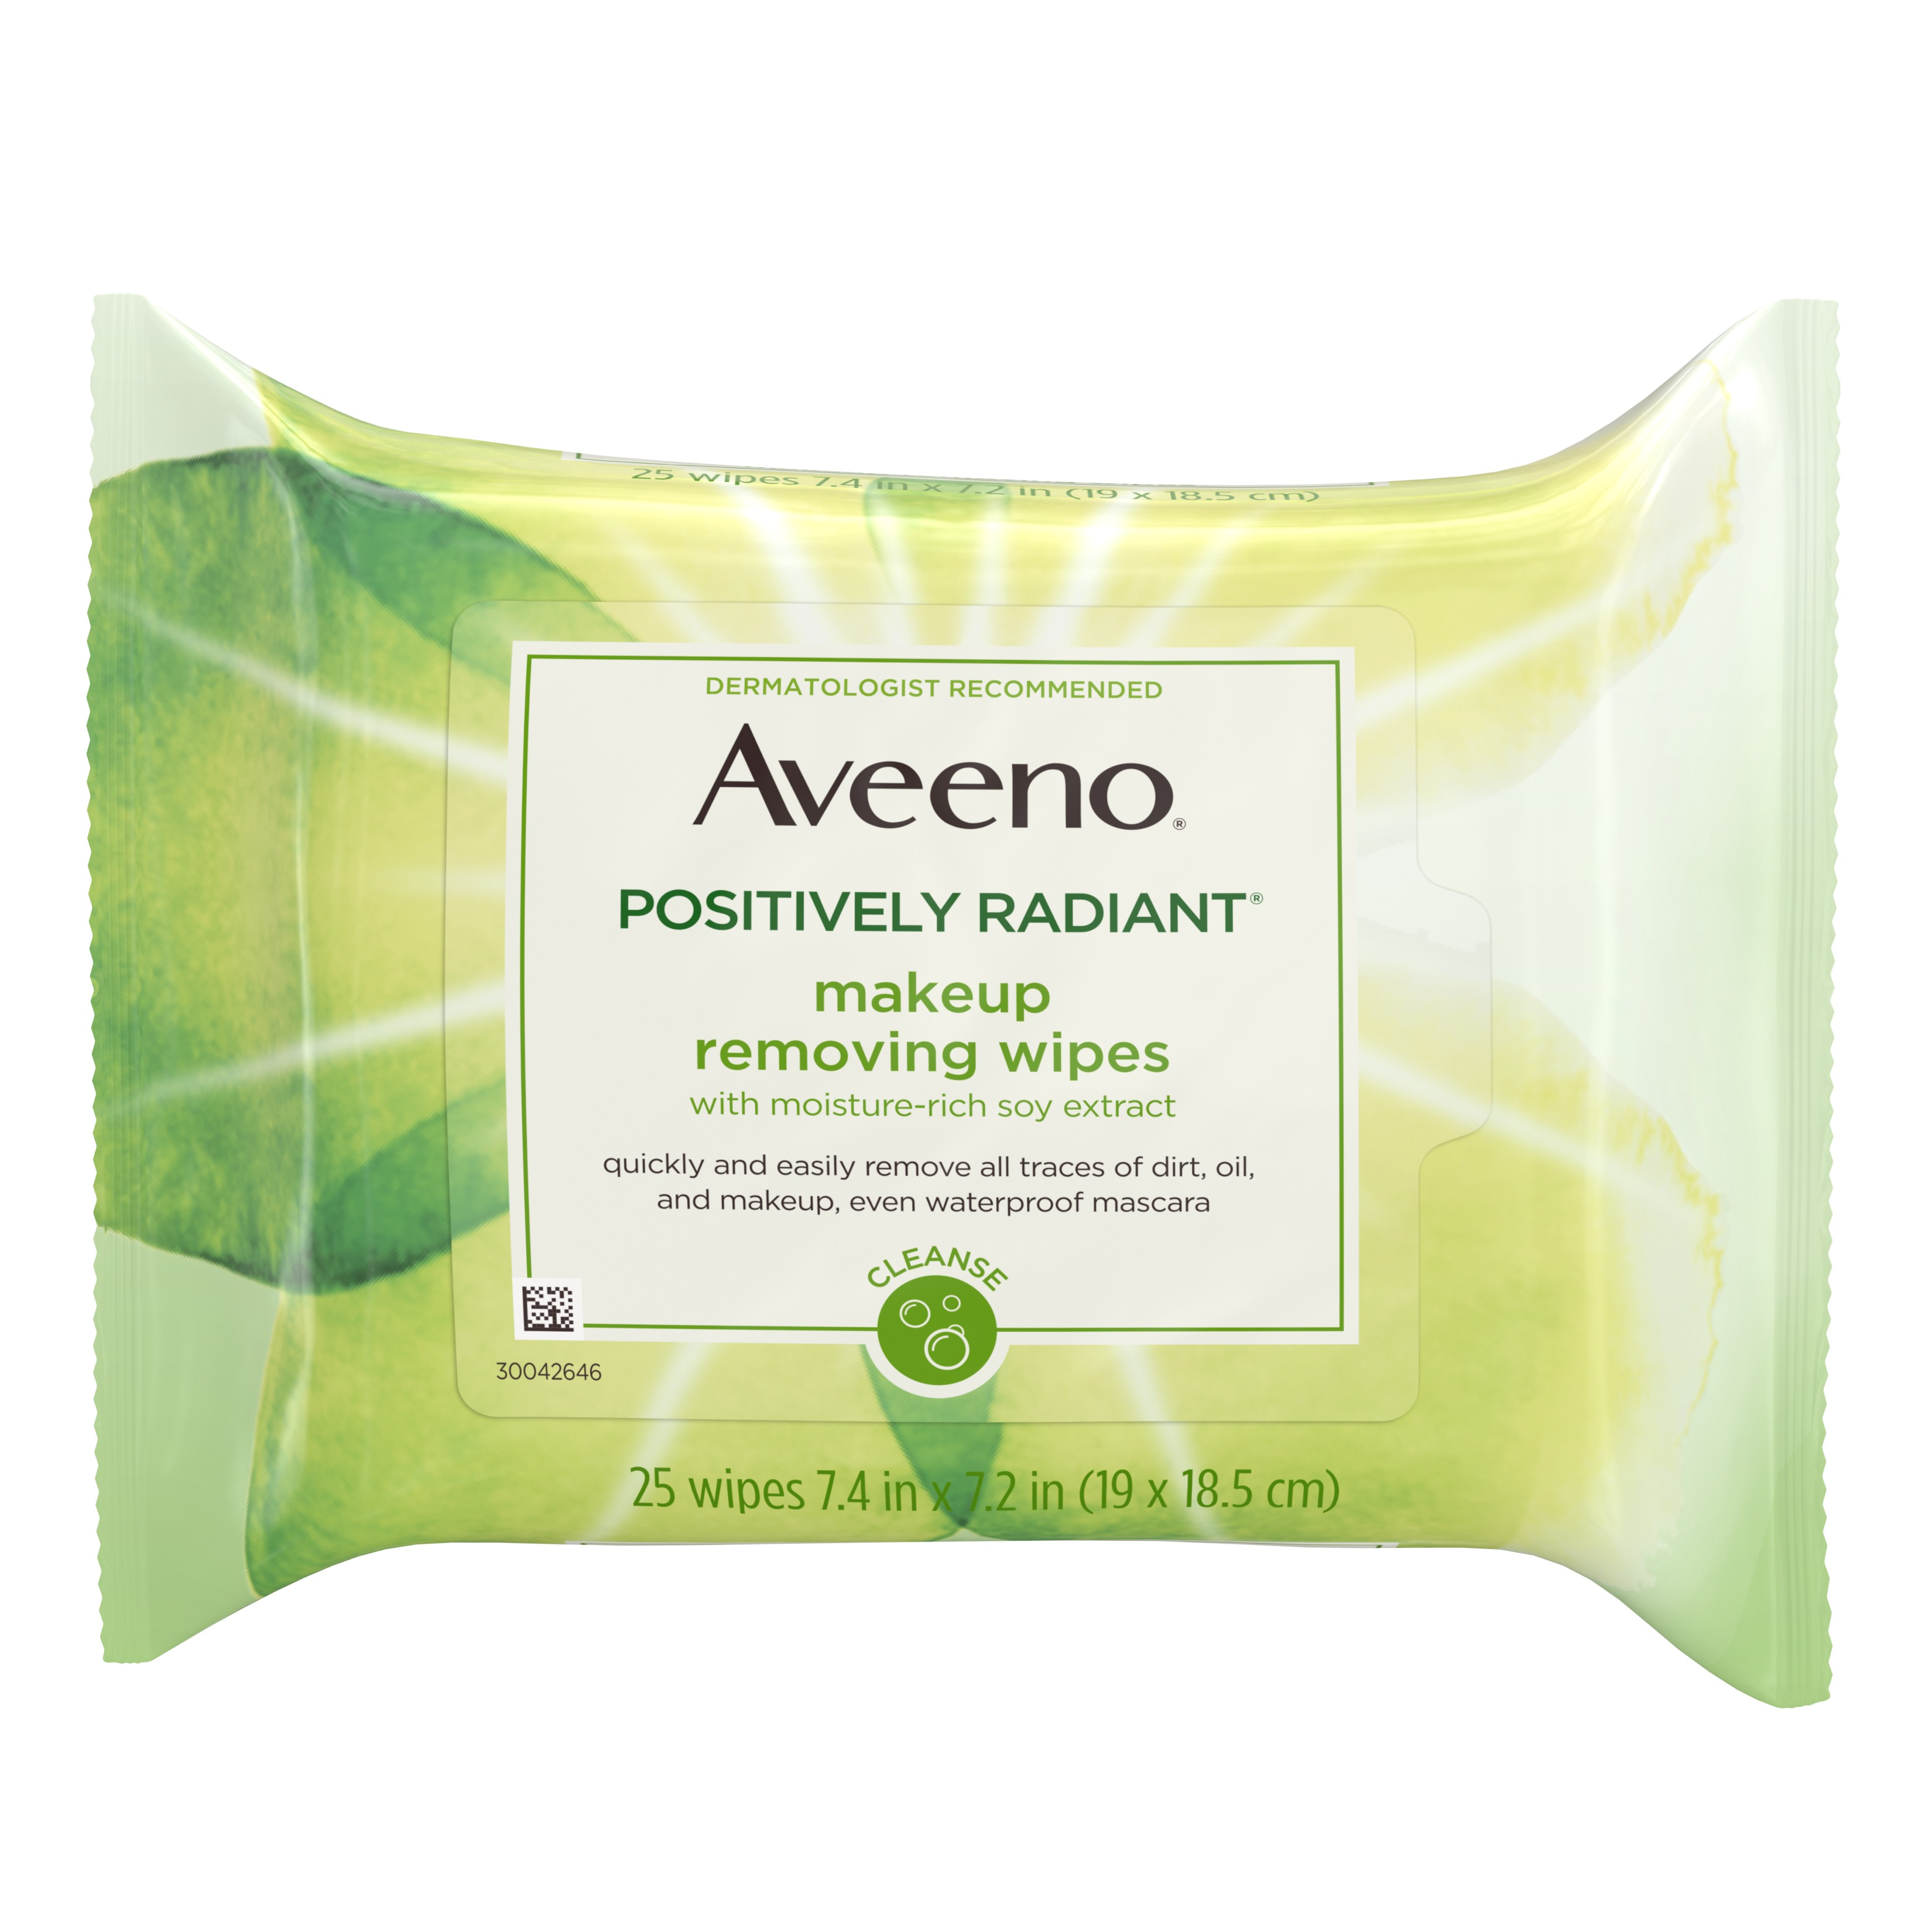 Aveeno Positively Radiant Oil-Free Makeup Removing Wipes, 25 ct.